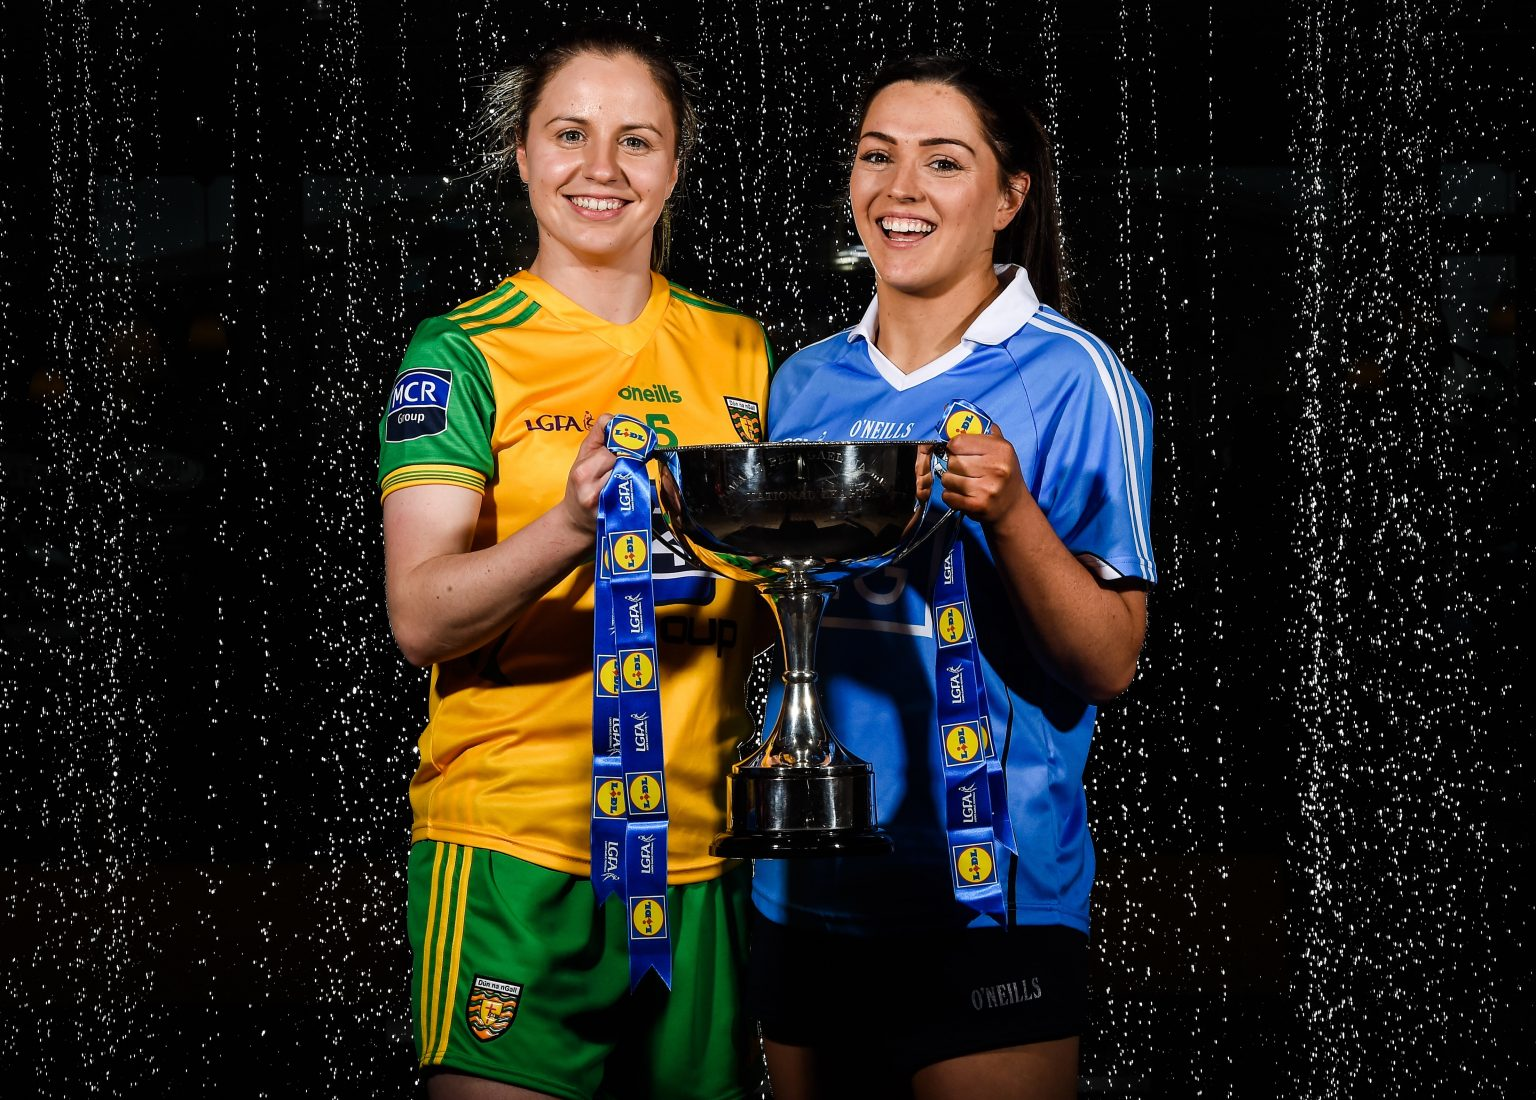 A Donegal Ladies Footballer in a yellow and green jersey and a Dublin Ladies Footballer in a sky blue jersey hold the Lidl NFL Trophy At a press launch to announce Lidl NFL Fixtures